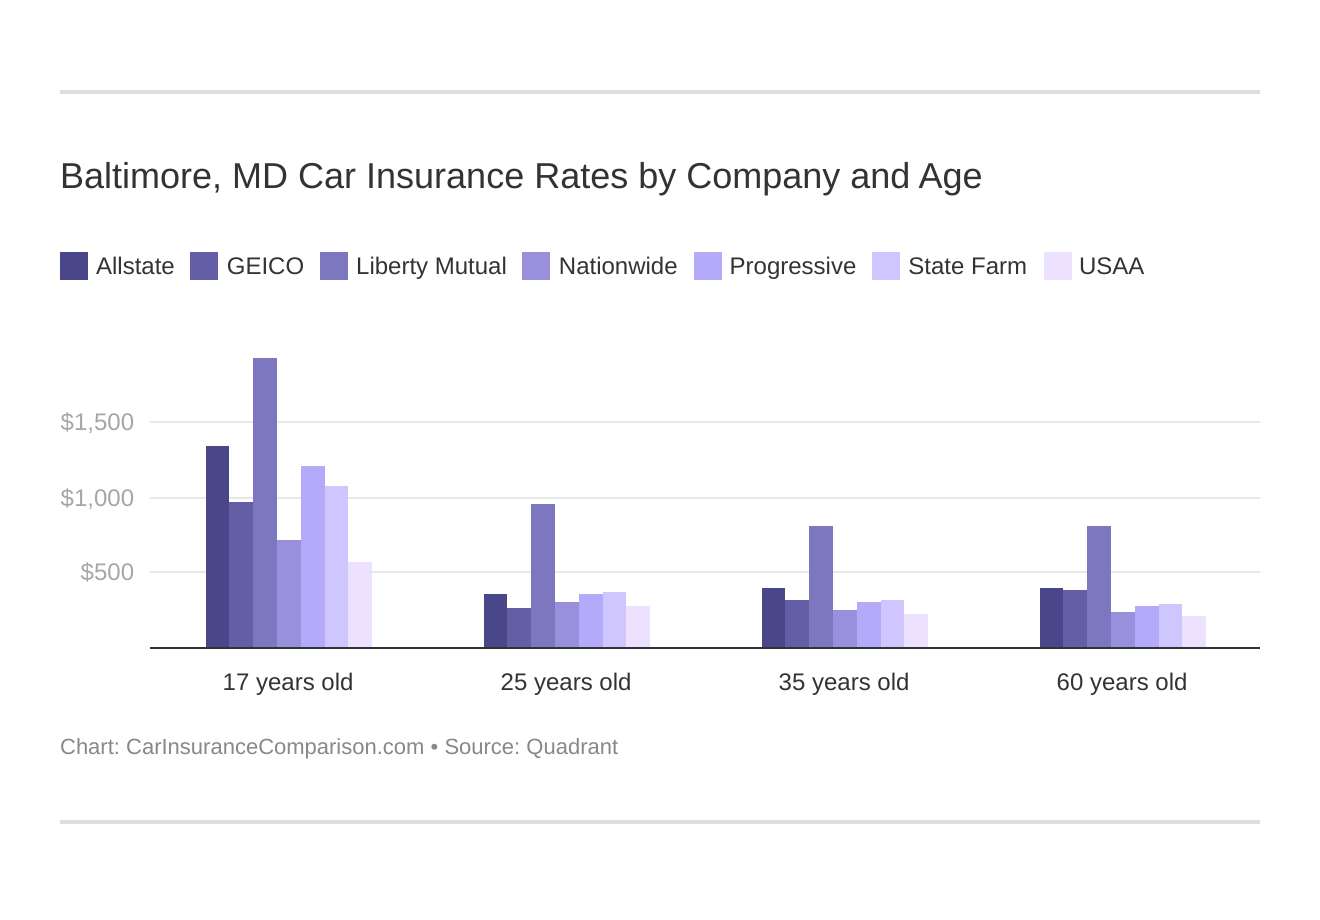 Baltimore, MD Car Insurance Rates by Company and Age